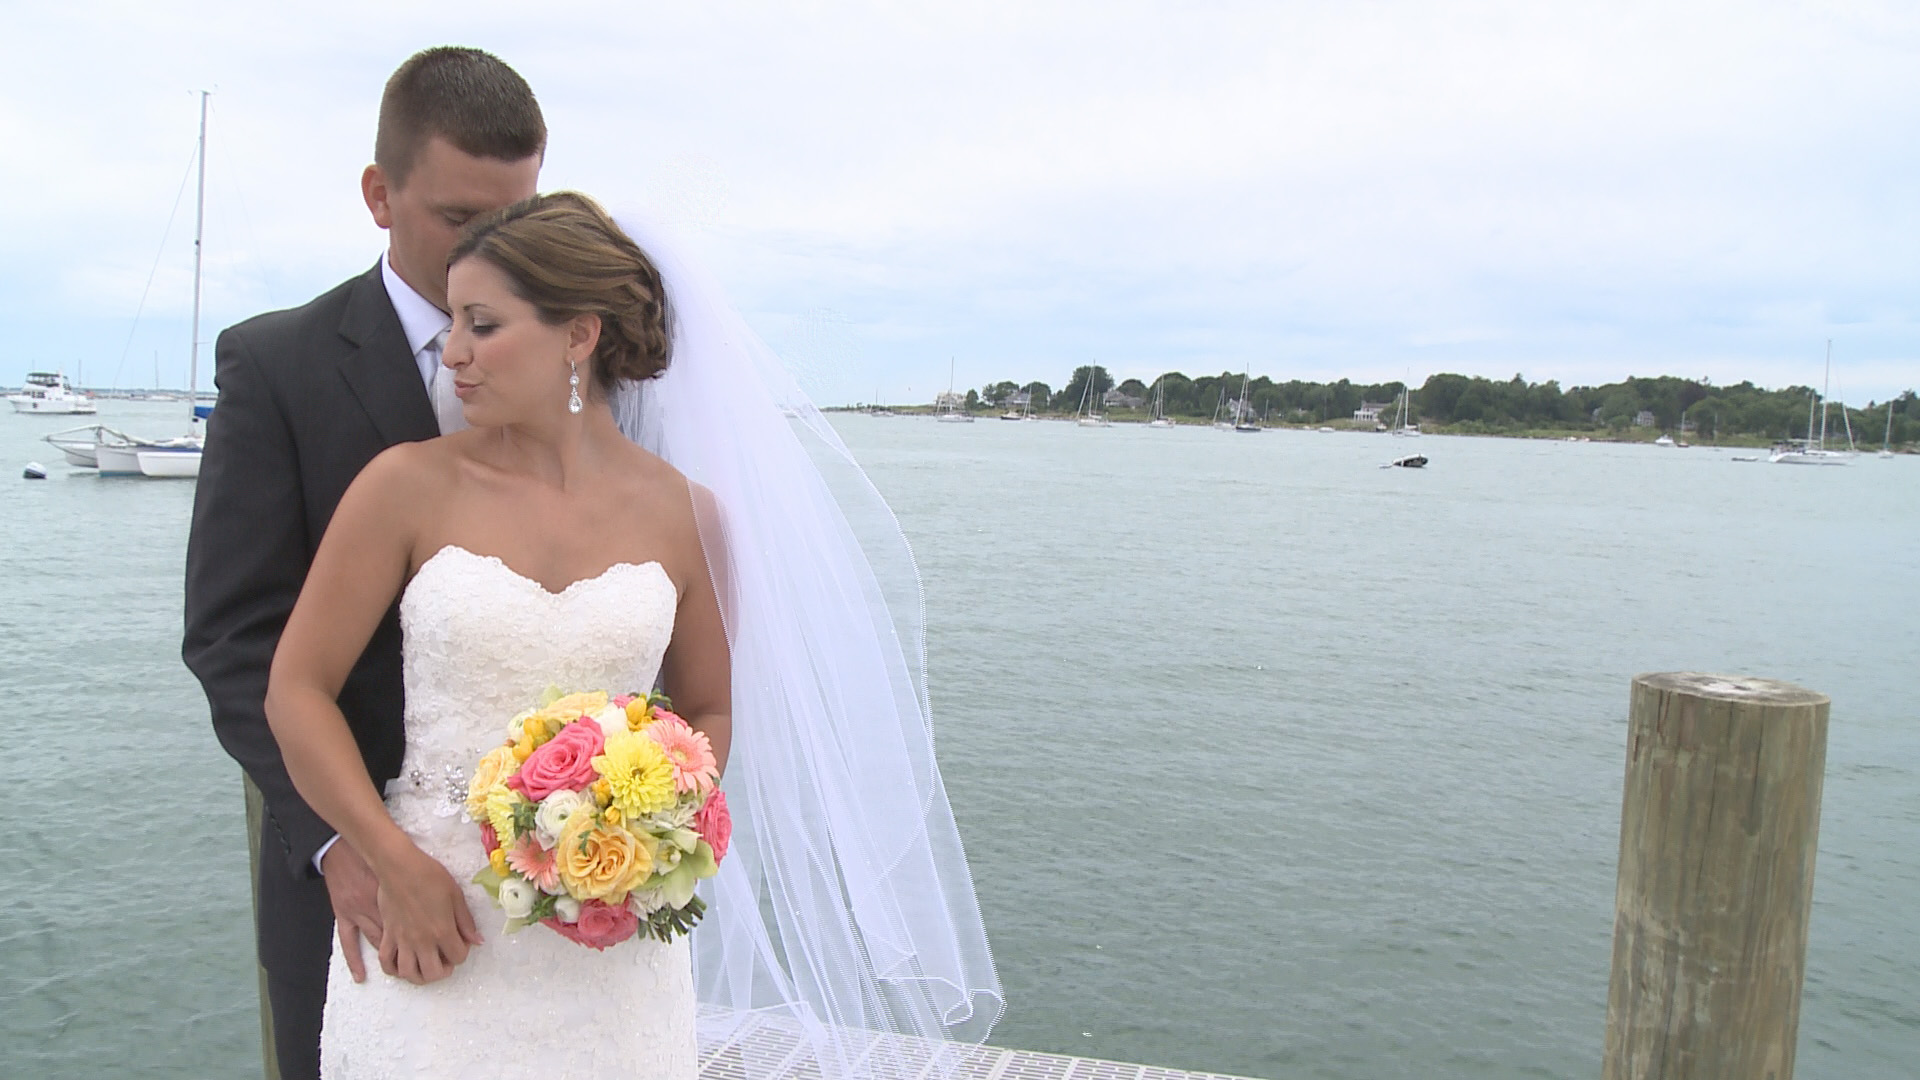 Bride and Groom pose for their photographer after their first look on a dock overlooking Long Island Sound in New London, Connecticut. Wedding Video Connecticut.